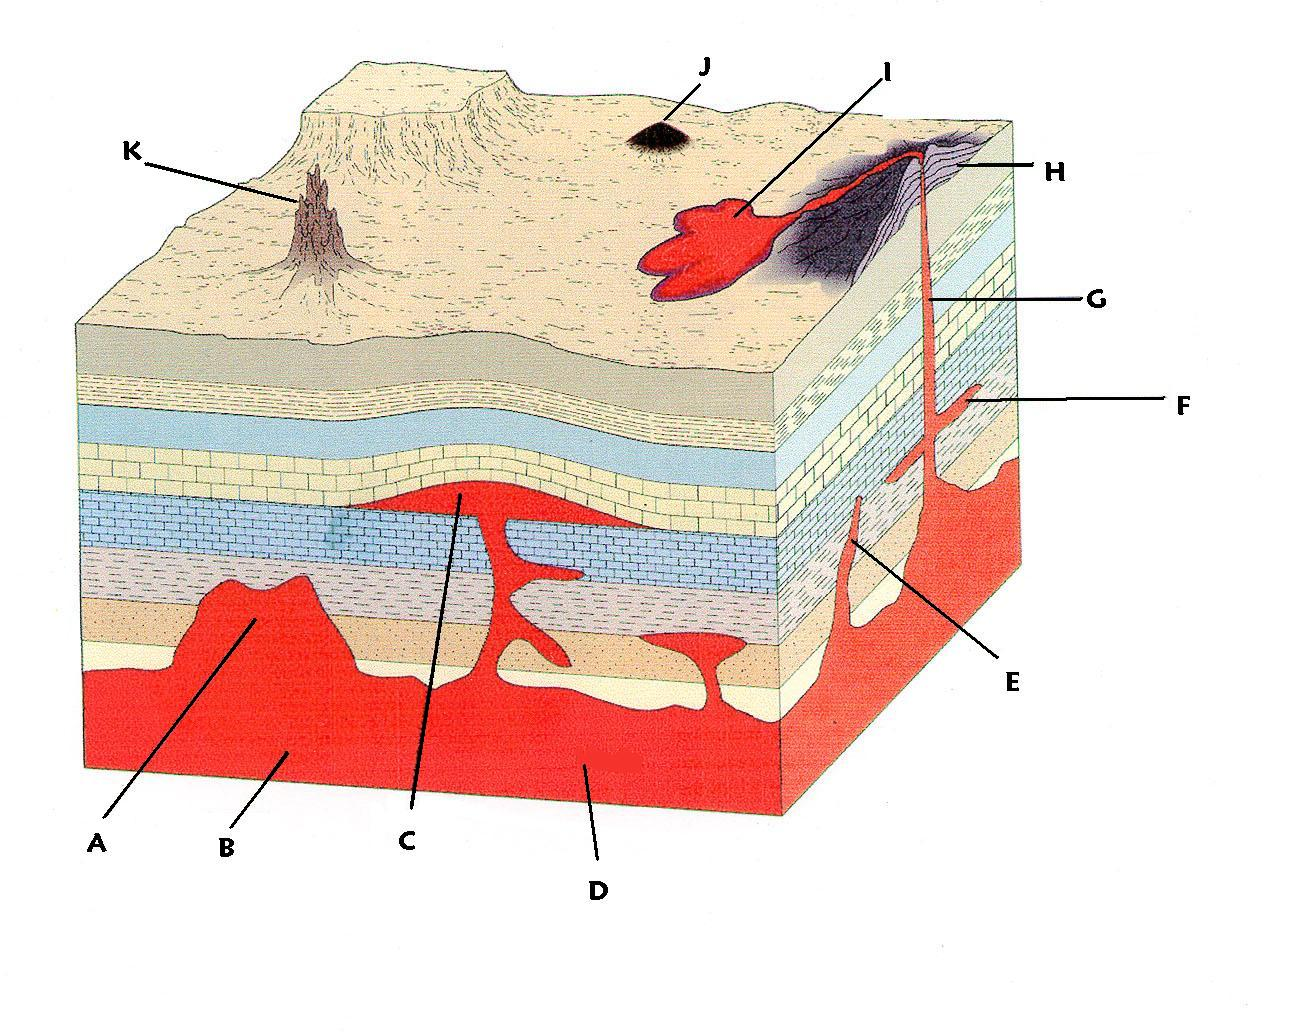 igneous intrusion diagram how are igneous rocks formed diagram